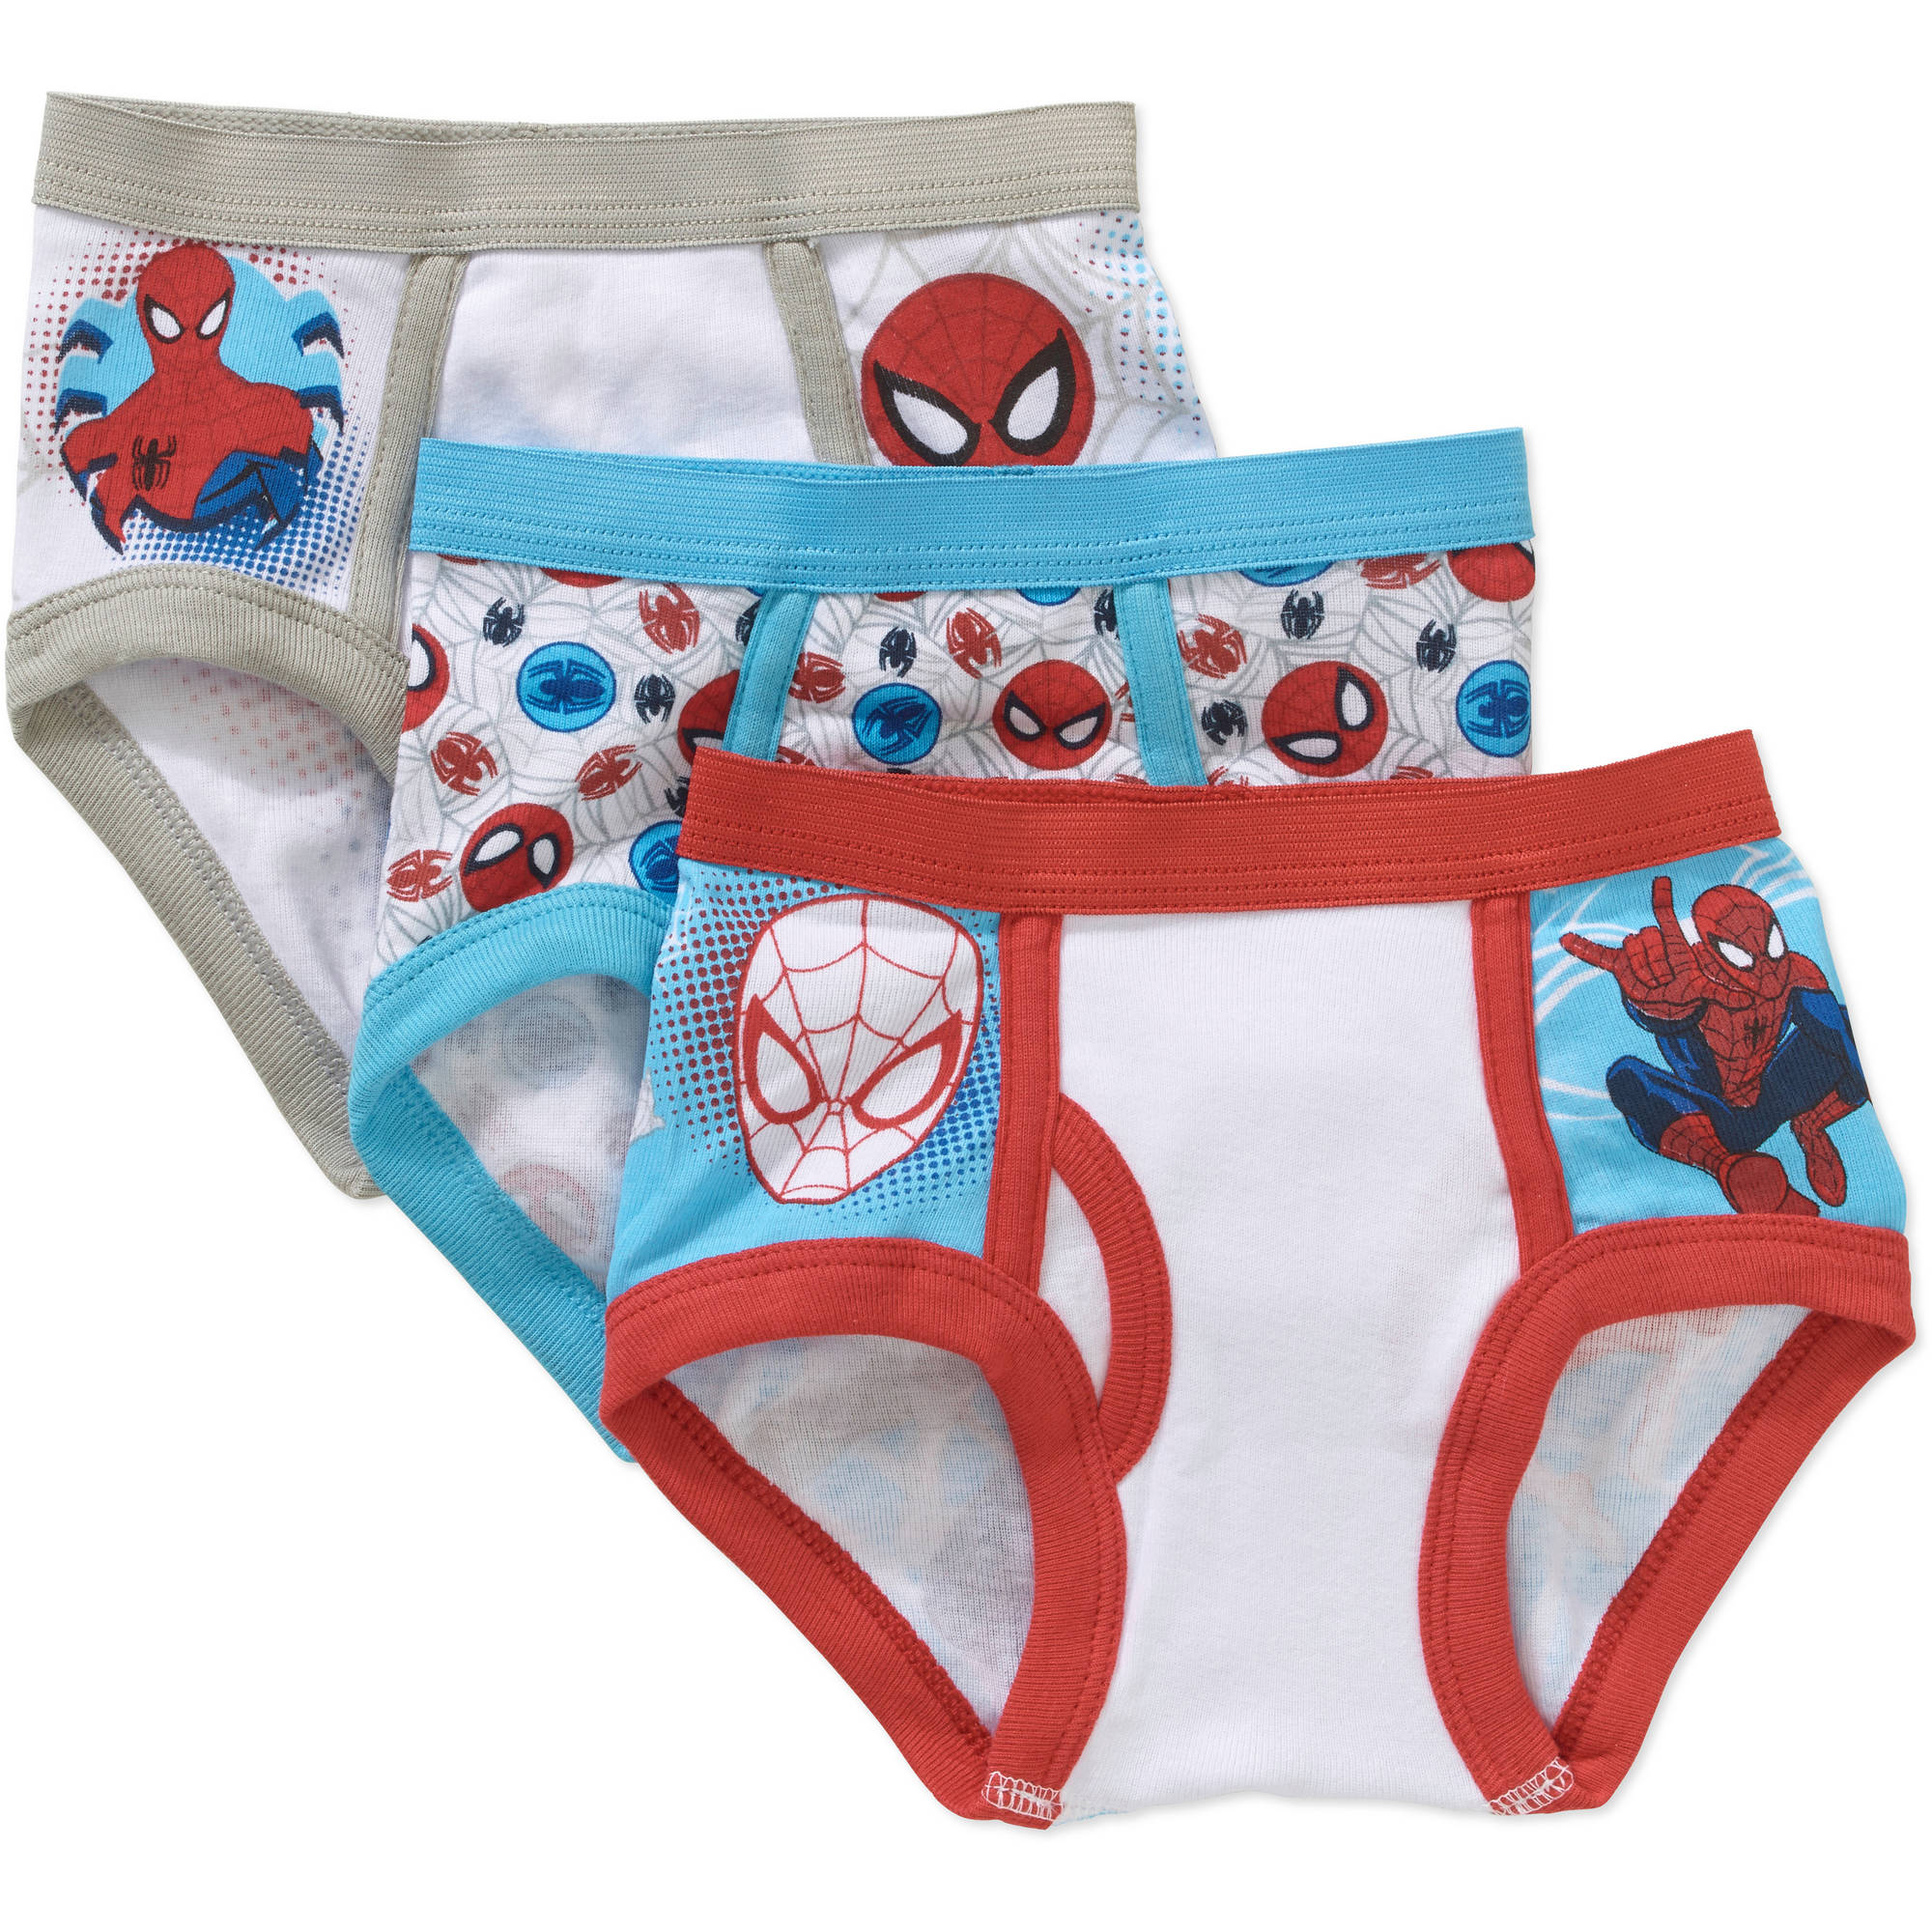 Toddler Boys Underwear, 3-Pack